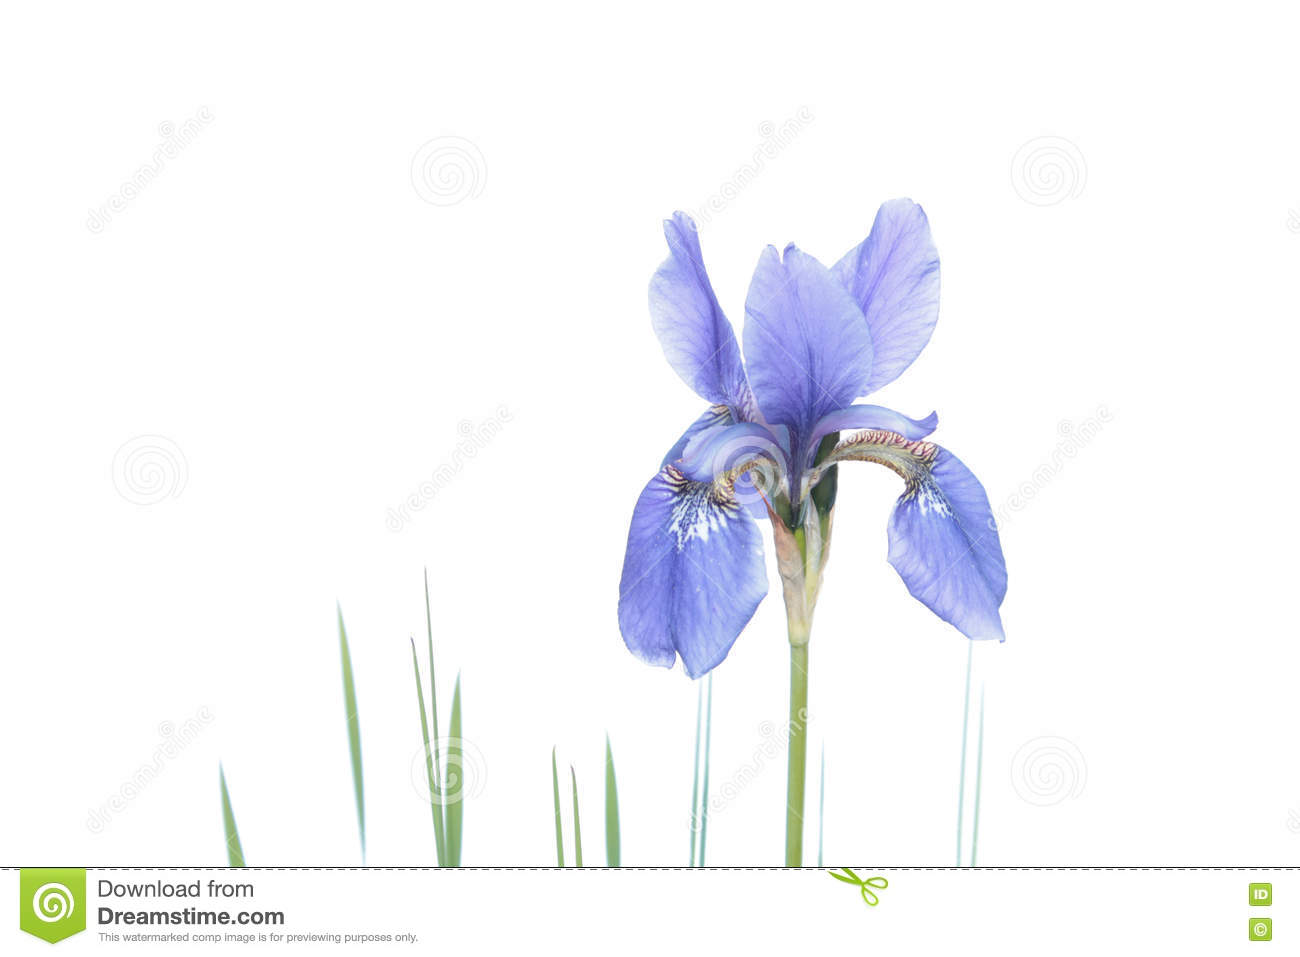 Blue iris isolated on white background siberian iris flower stock blue iris isolated on white background siberian iris flower garden botany izmirmasajfo Choice Image